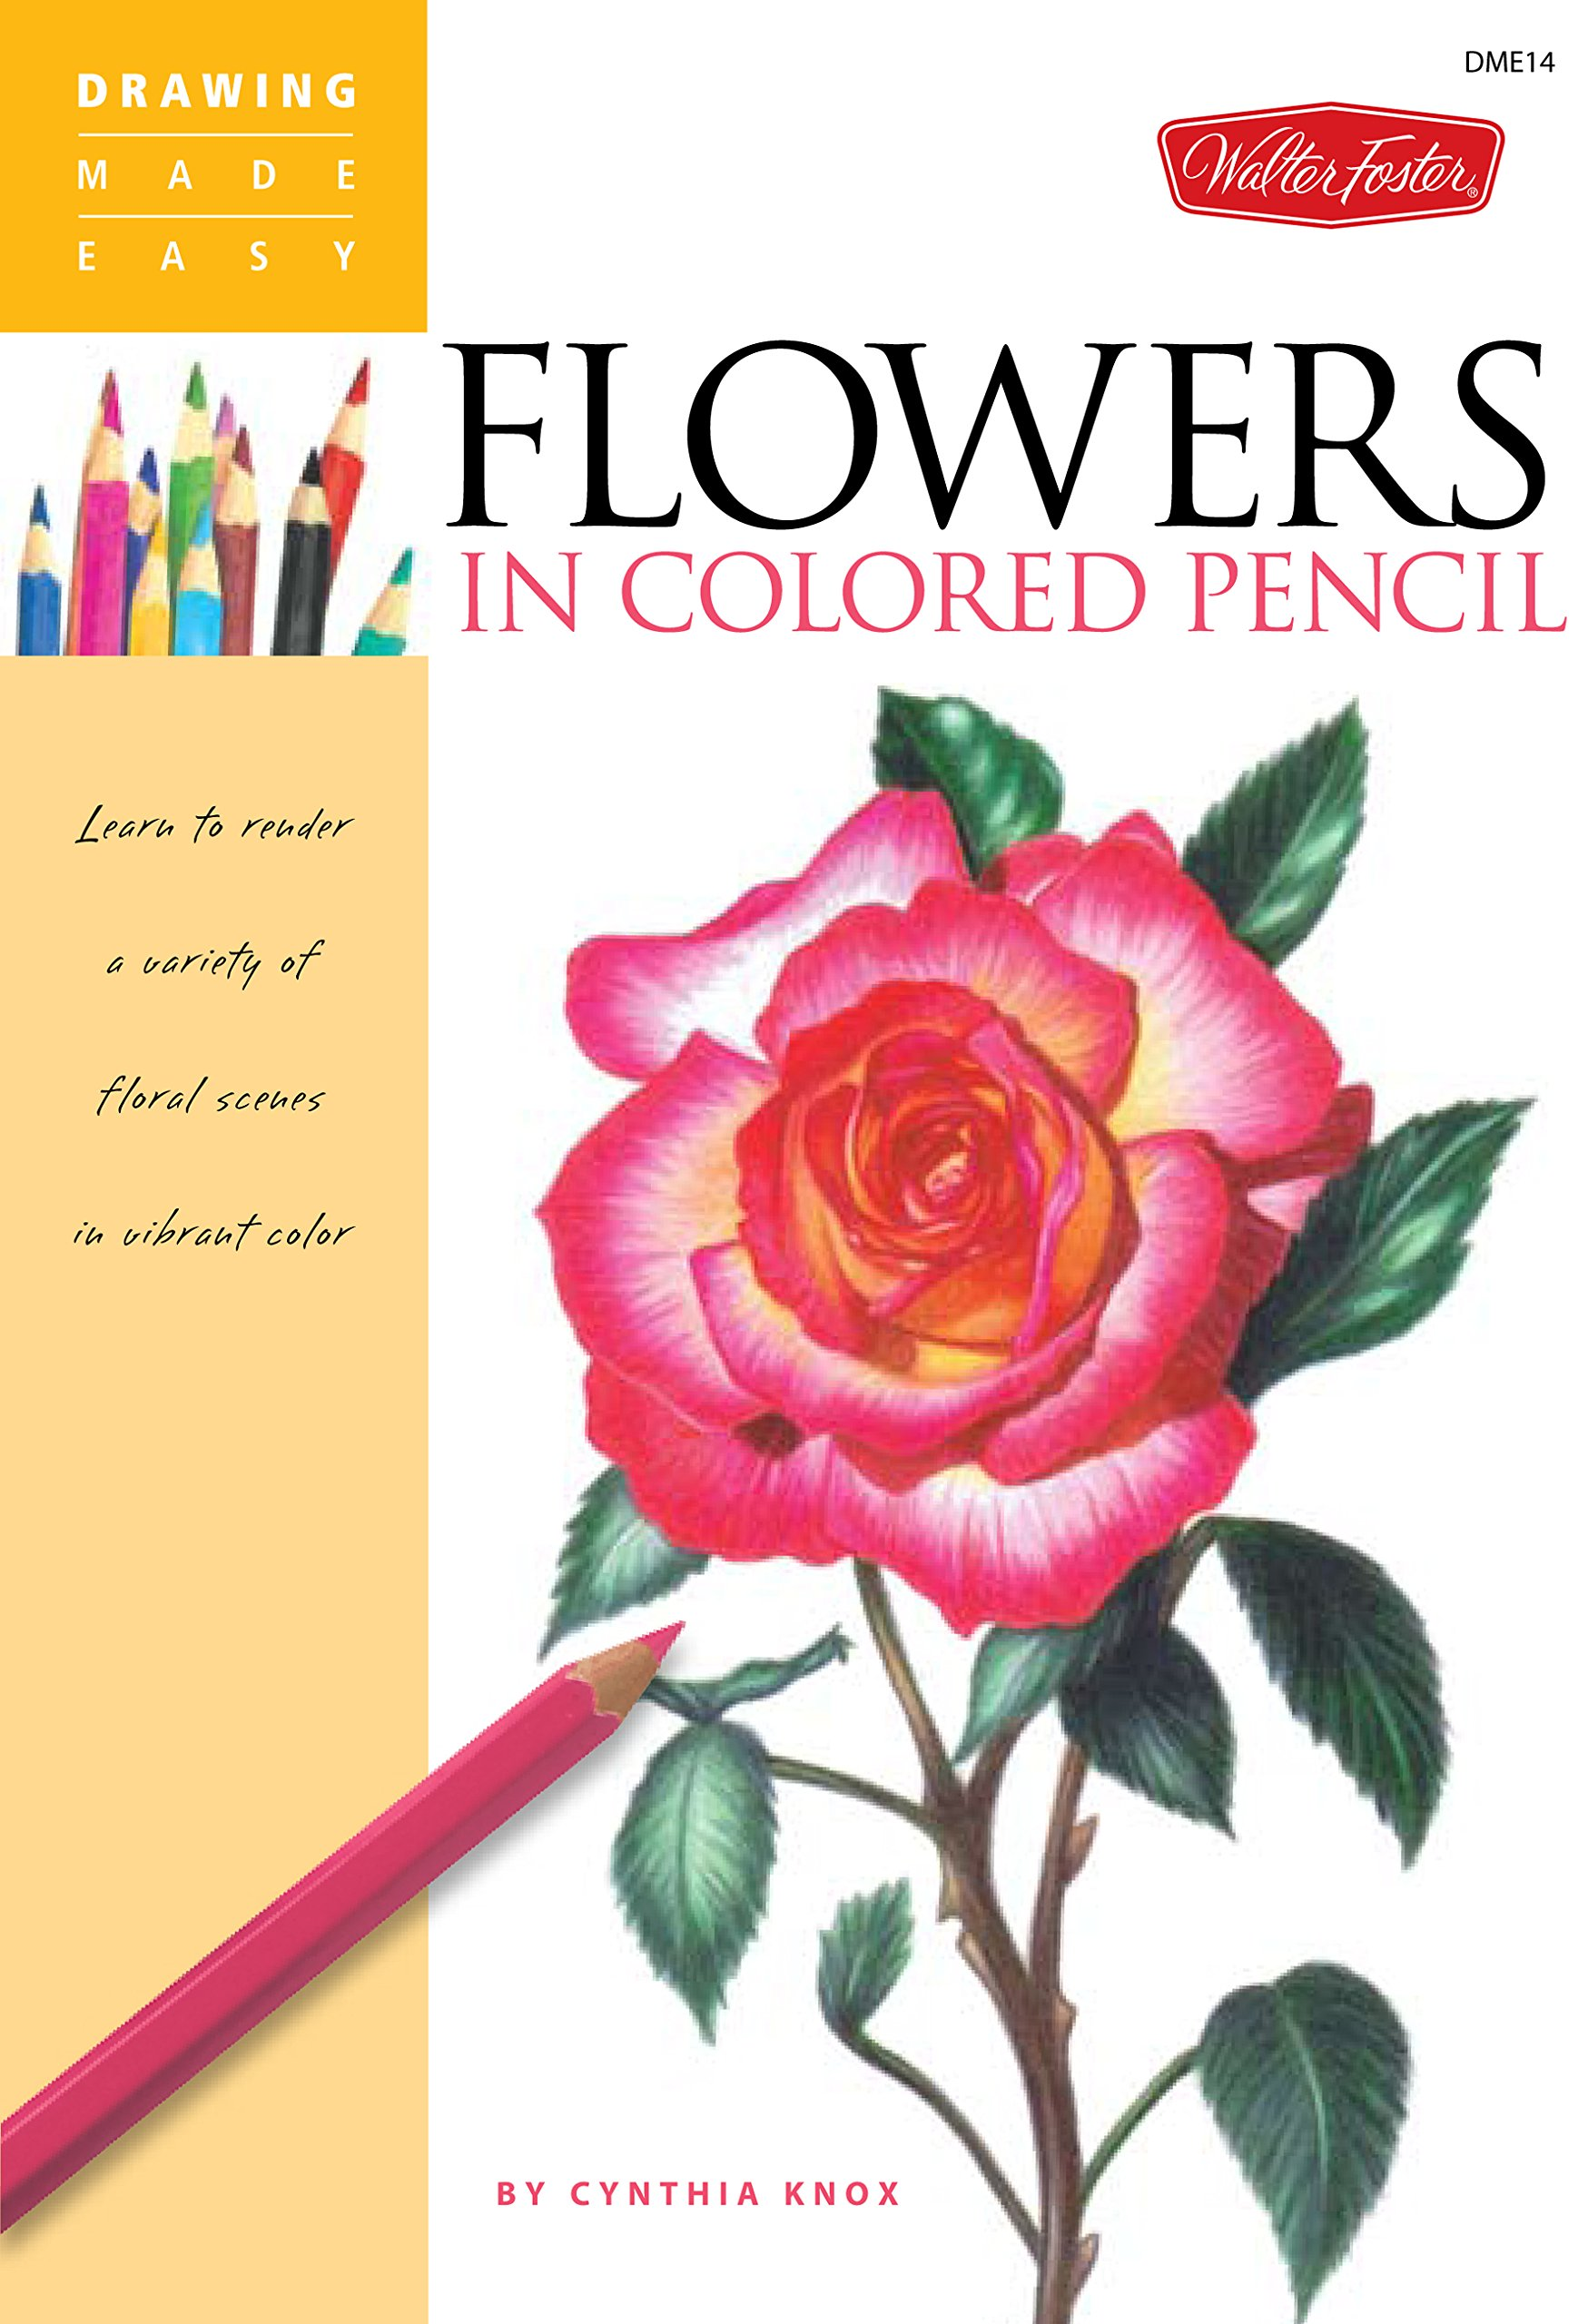 Flowers in Colored Pencil (Drawing Made Easy)